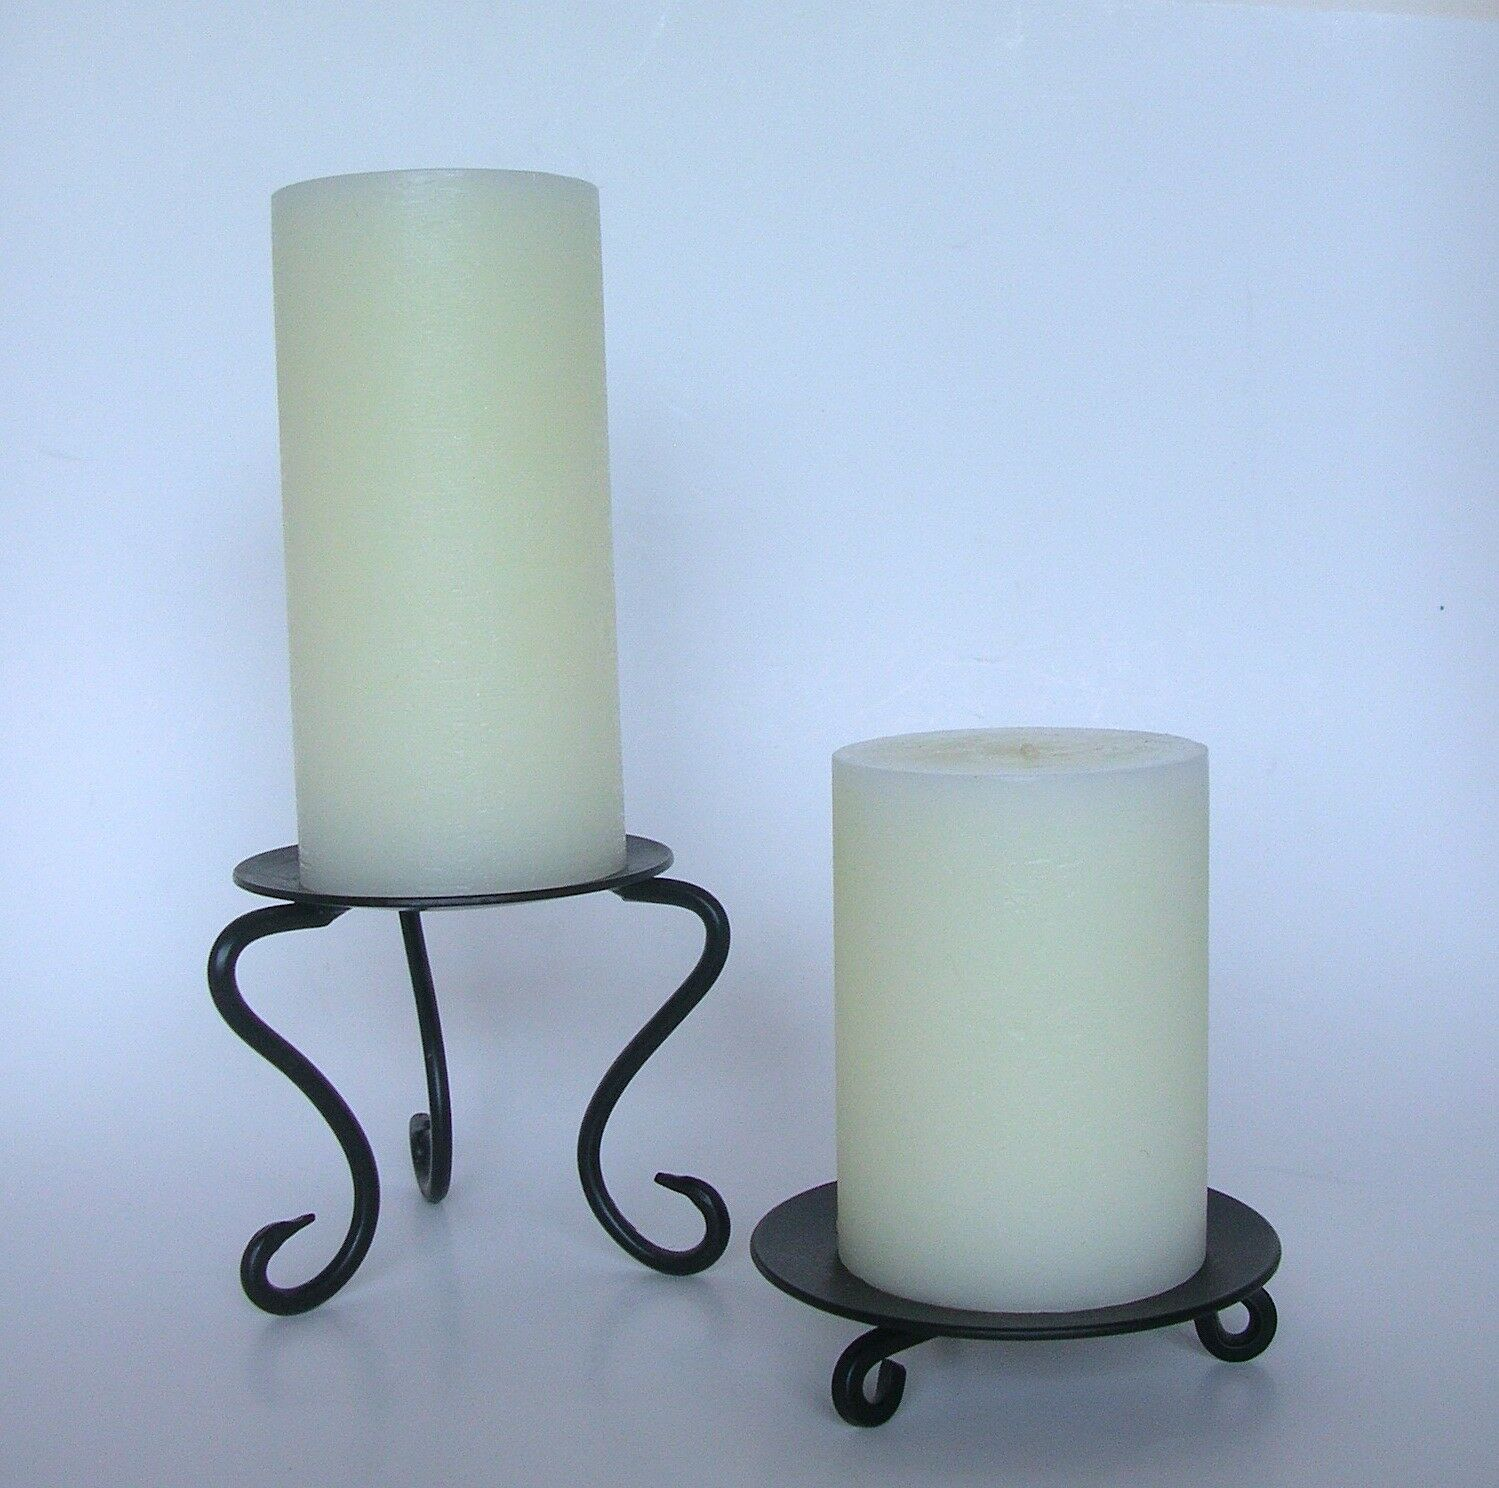 Pierre Deux 2 Scroll Foot Black Metal Candle Stands 3 6 Pillars - Nwt  - $136.86